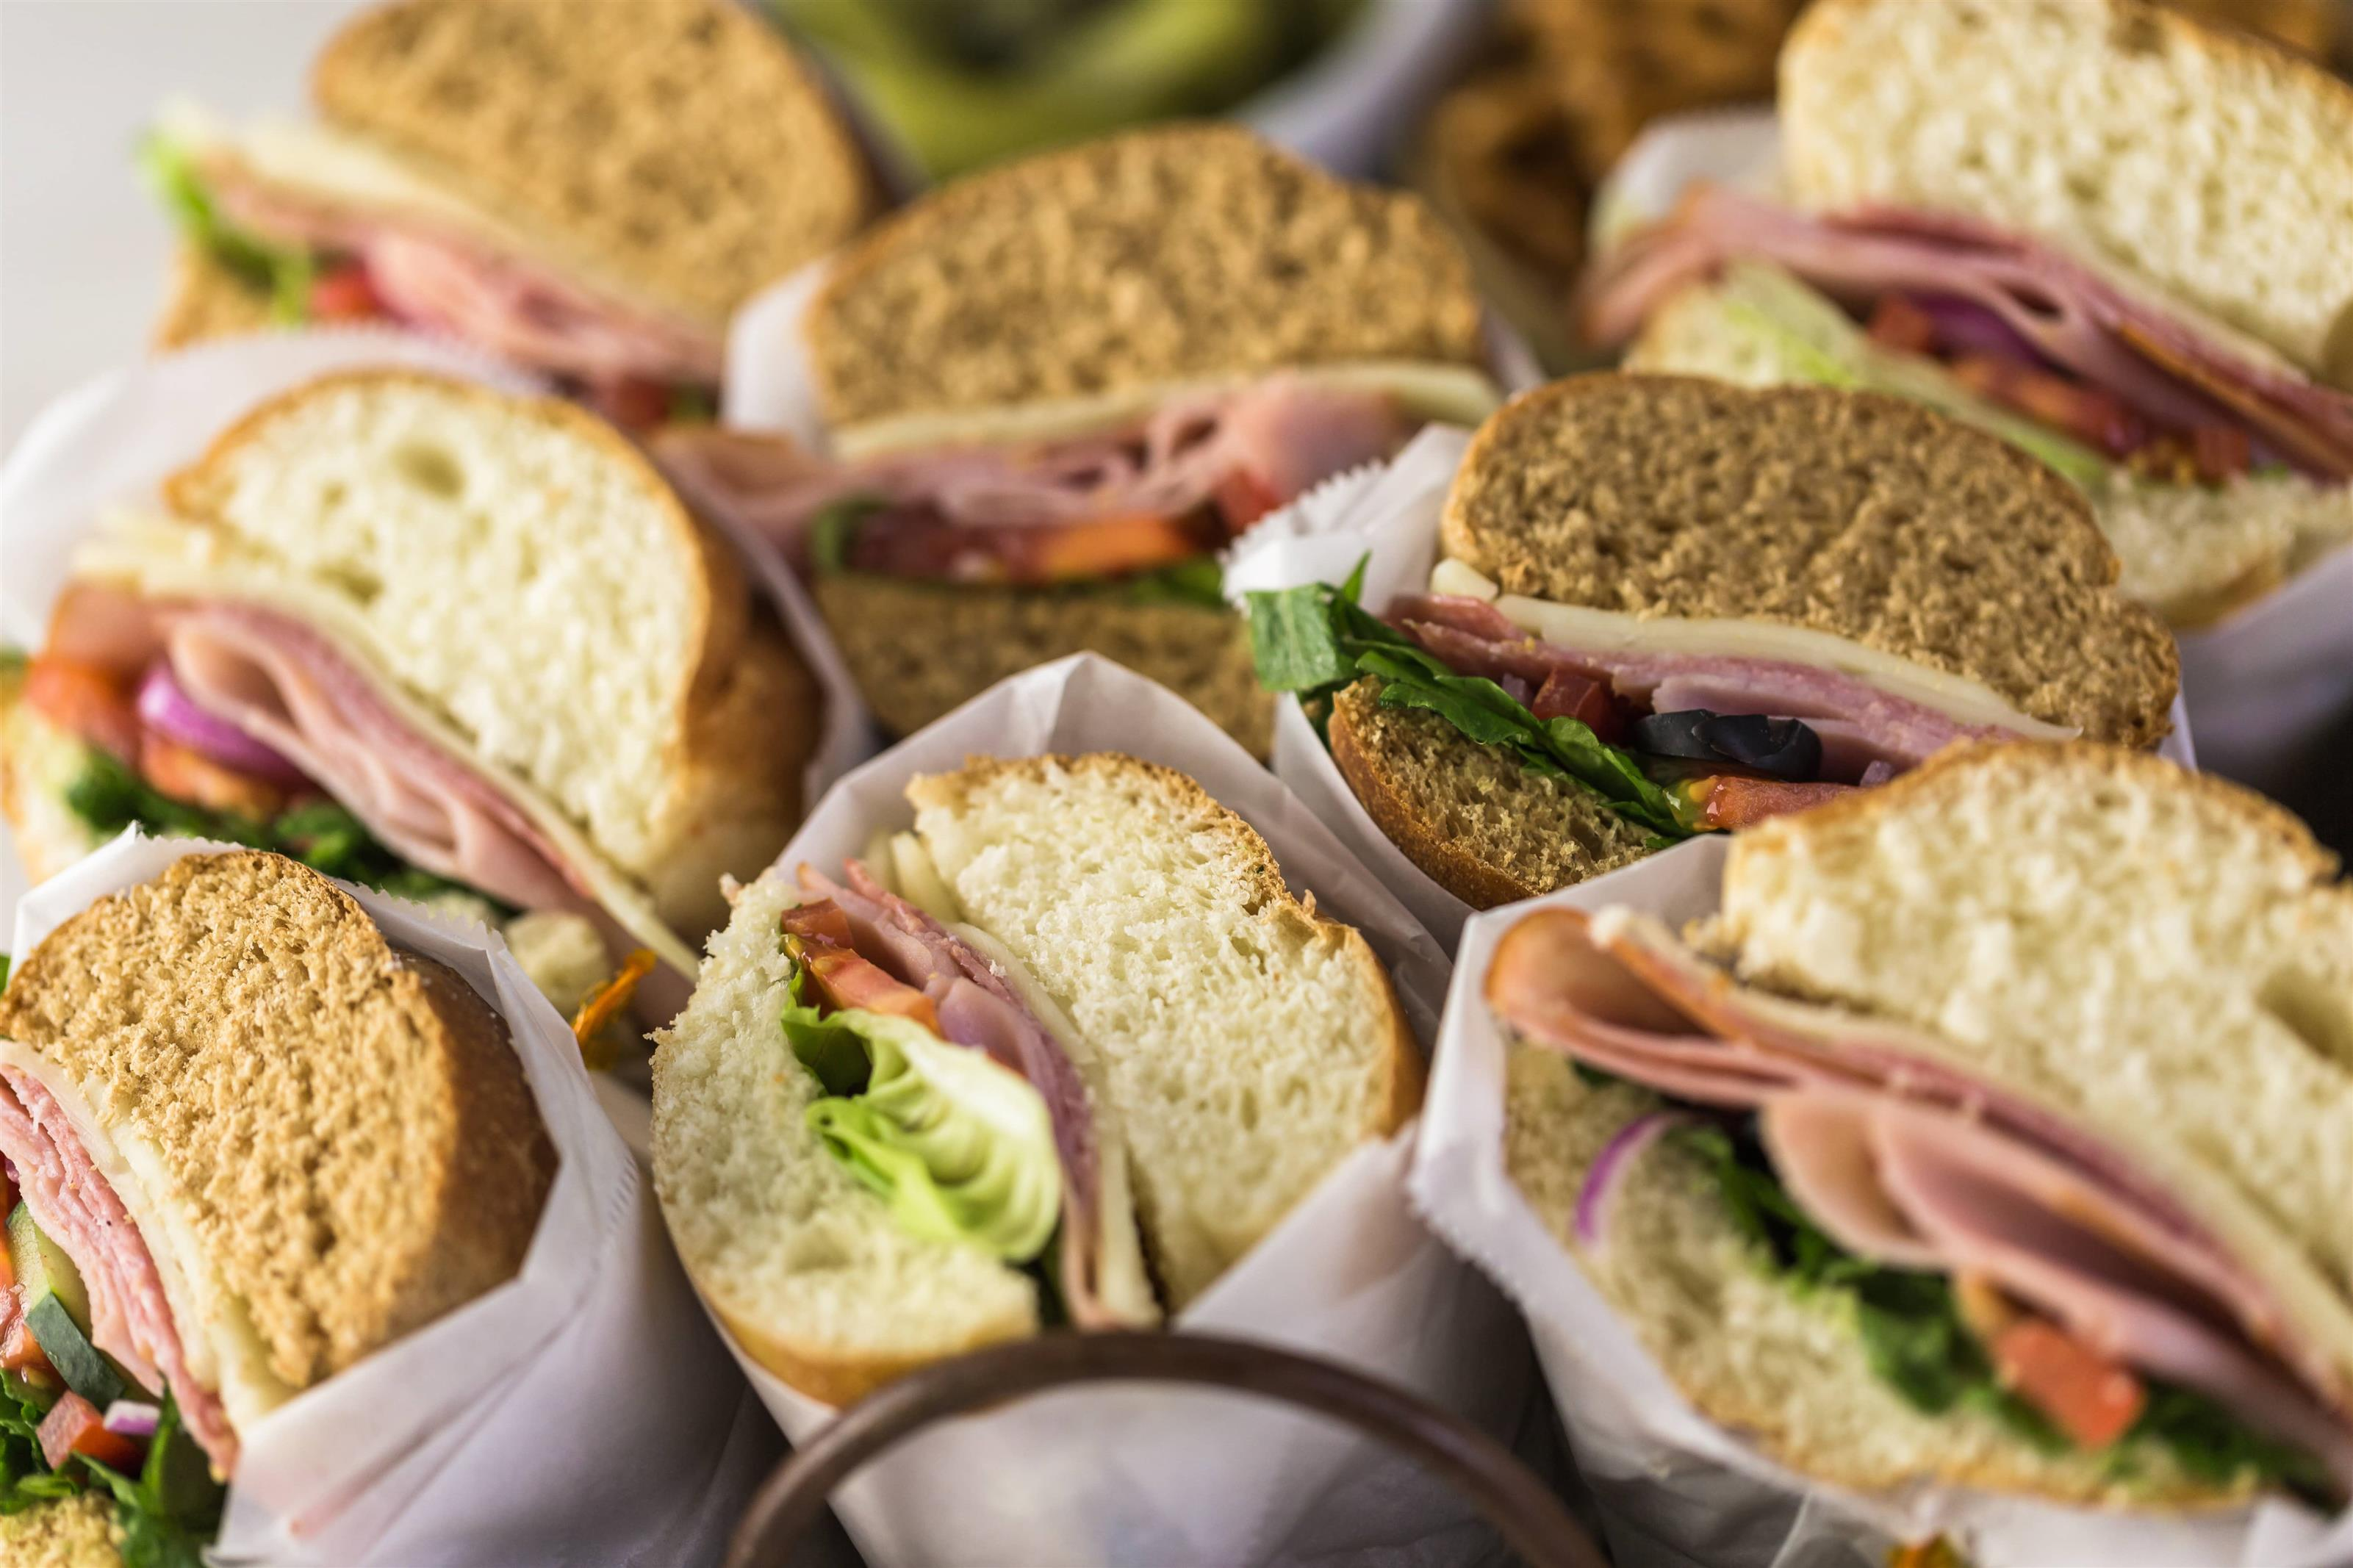 An assortement of sandwiches wrapped in paper